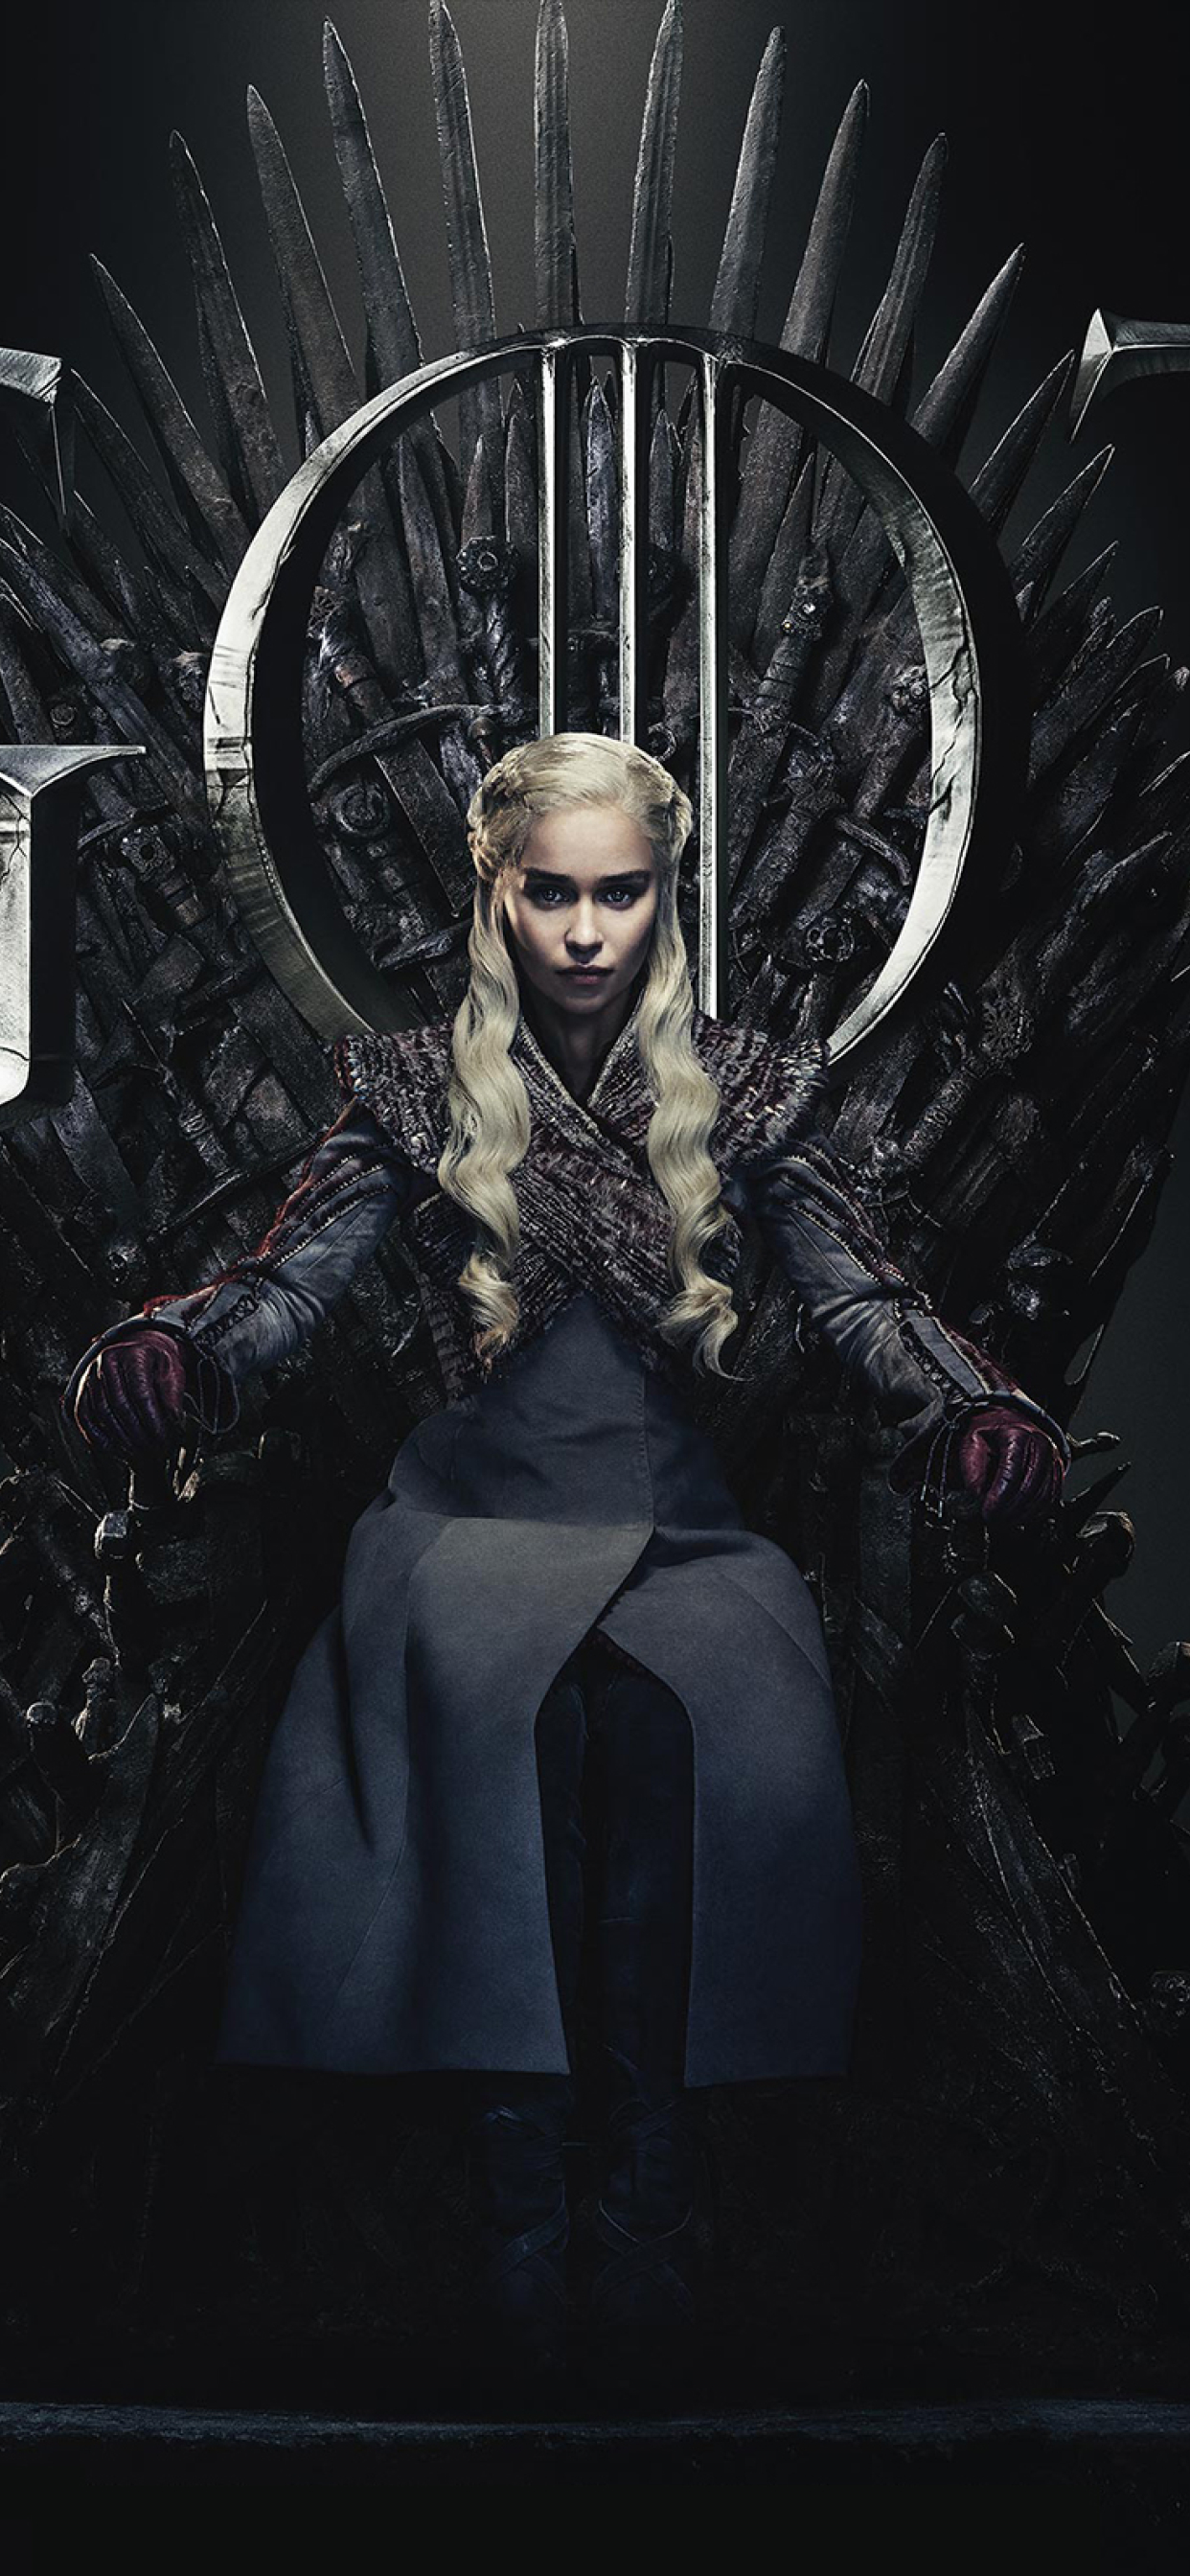 1242x2688 Daenerys Targaryen Game Of Thrones Season 8 Poster